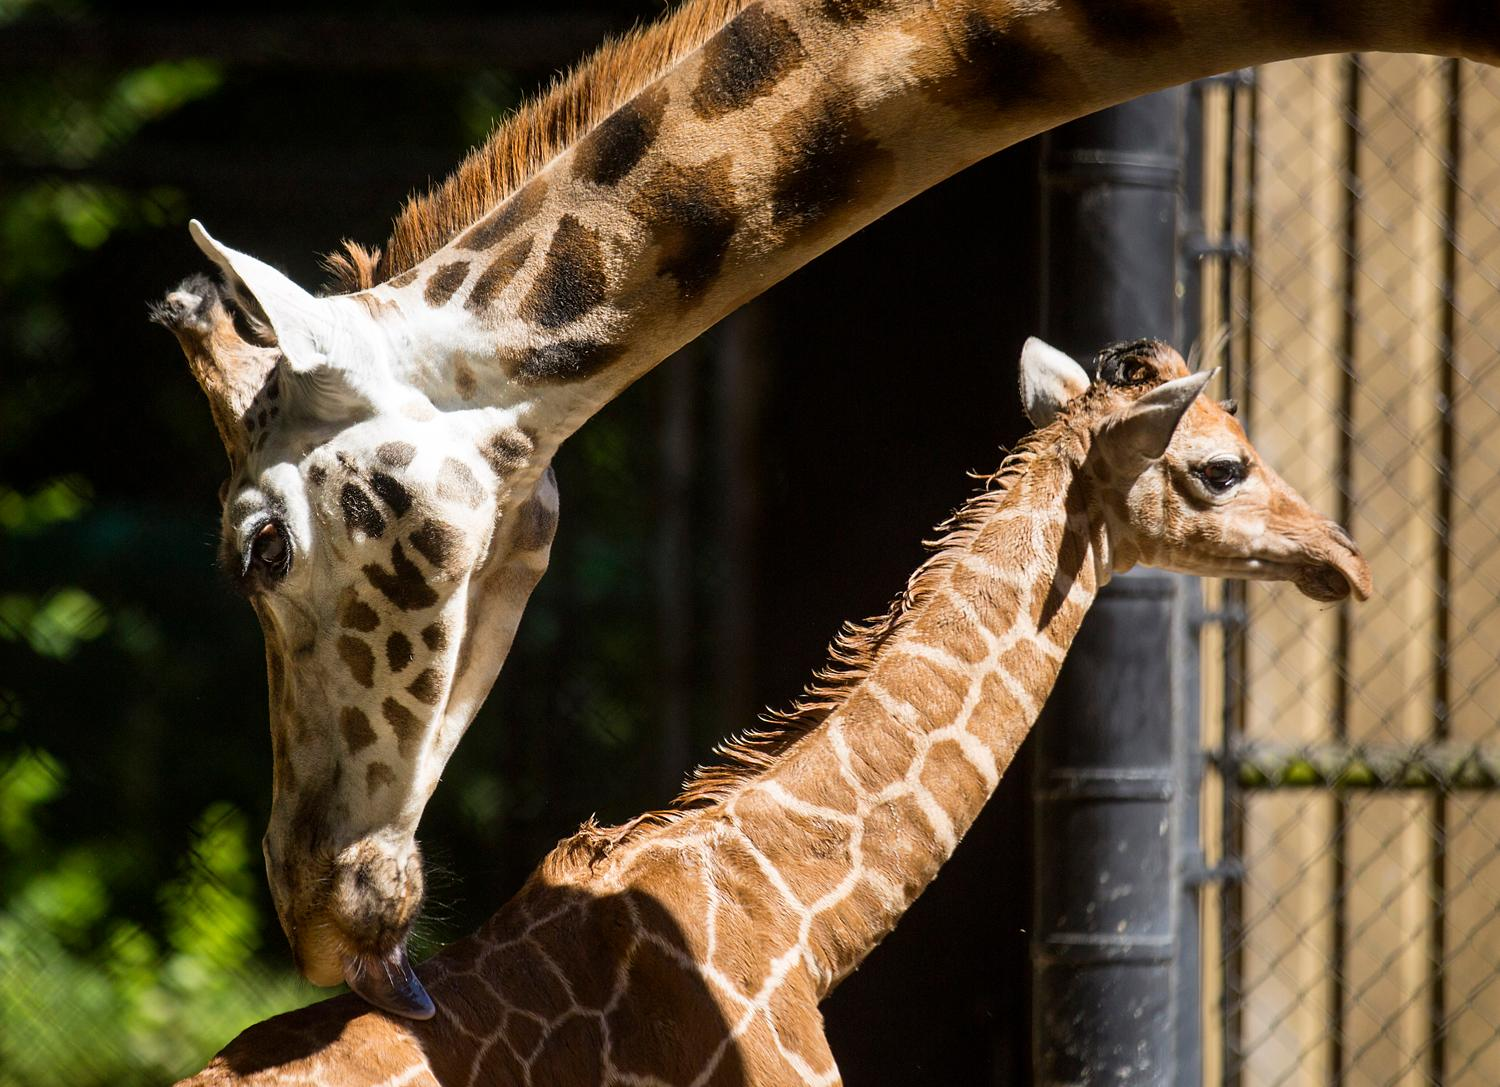 Woodland Park Zoo's new baby giraffe enjoys the sun on Friday, June 30, 2017. The baby's mother, 8-year-old Tufani, gave birth Tuesday, June 20, 2017. (Sy Bean / Seattle Refined)